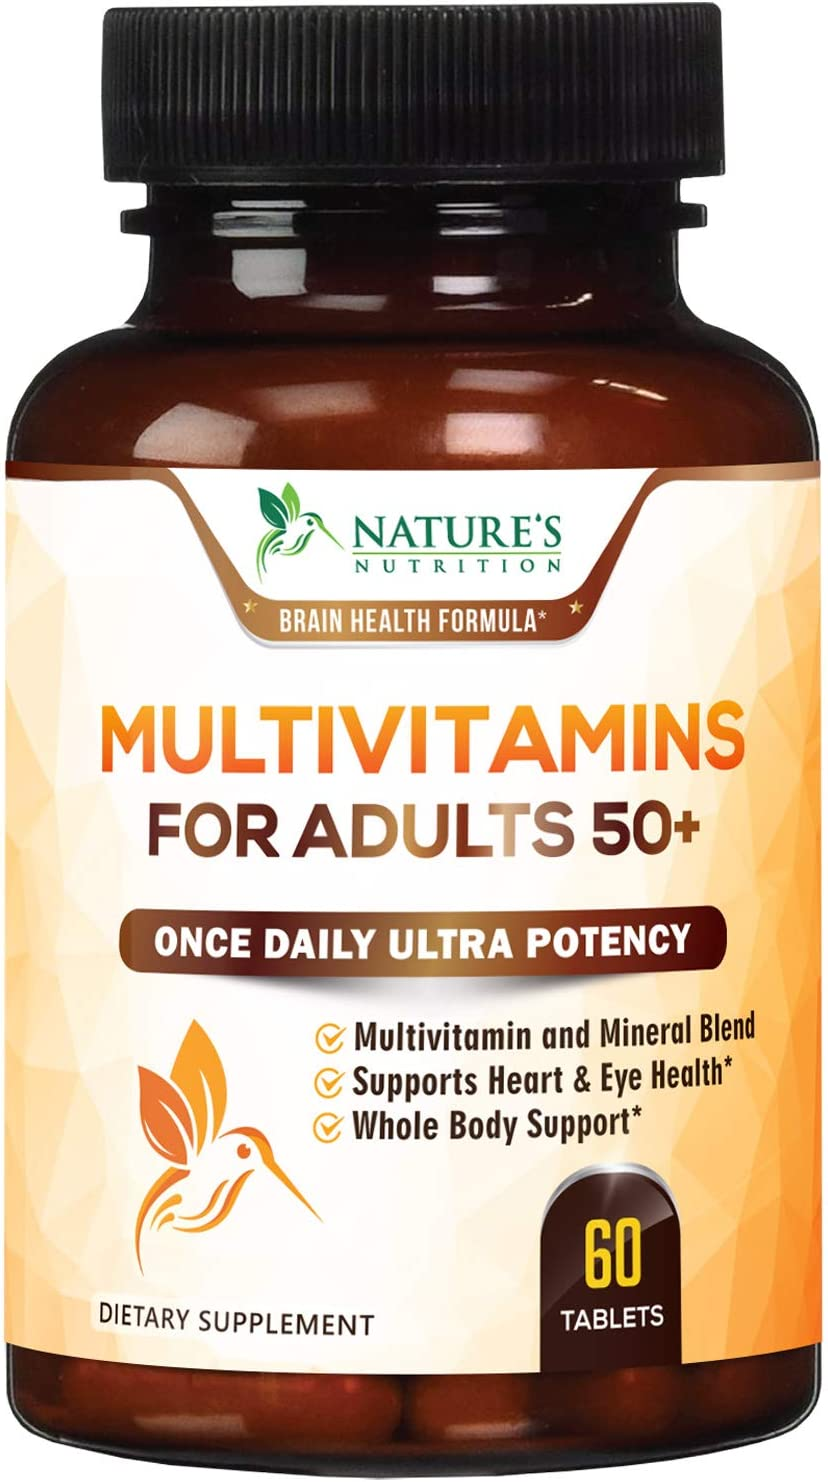 Multivitamin for Adults 50 Plus Extra Strength Daily Multivitamins and Minerals Supplement 627mg - Made in USA - Multi Vitamins A, C, D, E, B12, Iron, and Calcium for Men & Women - 60 Tablets